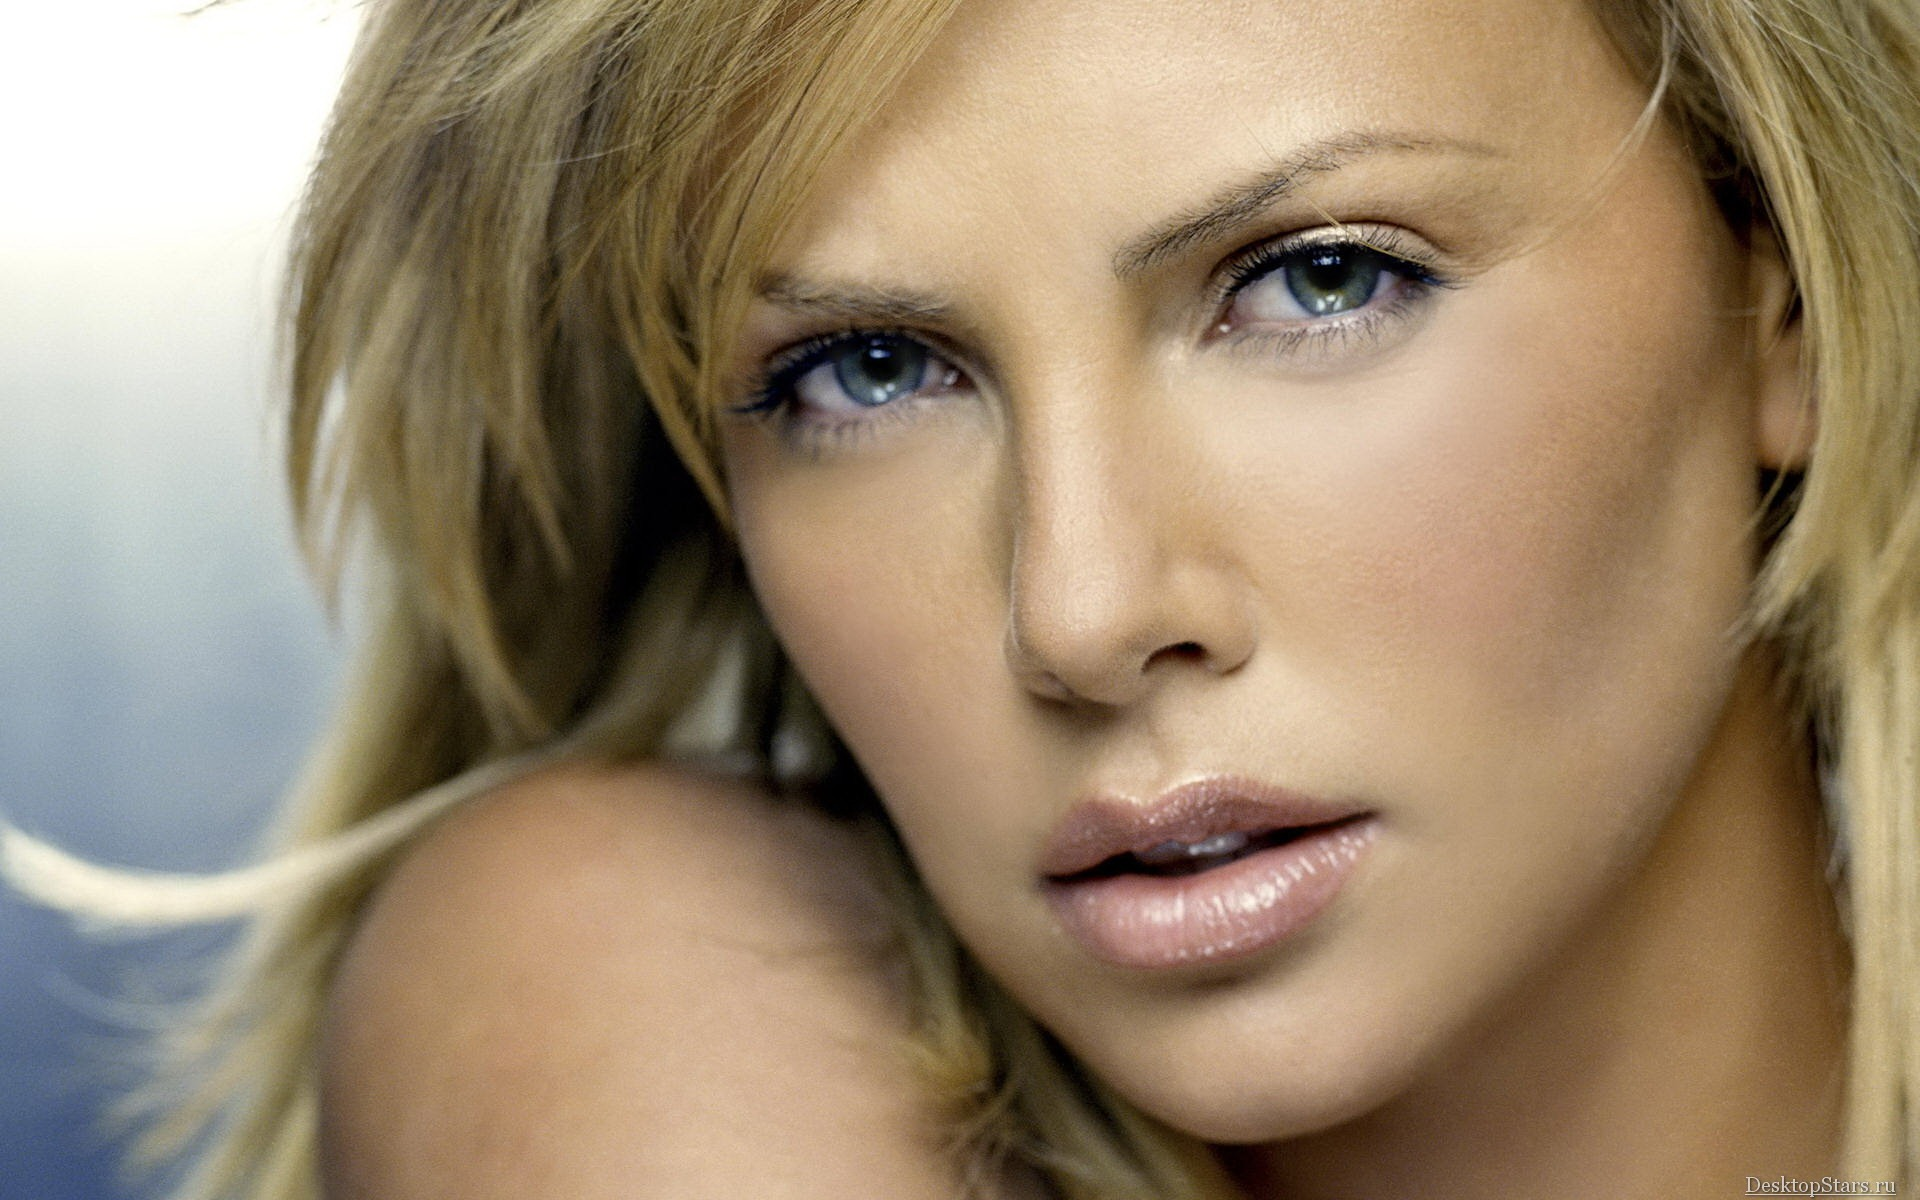 Charlize Theron #029 - 1920x1200 Wallpapers Pictures Photos Images